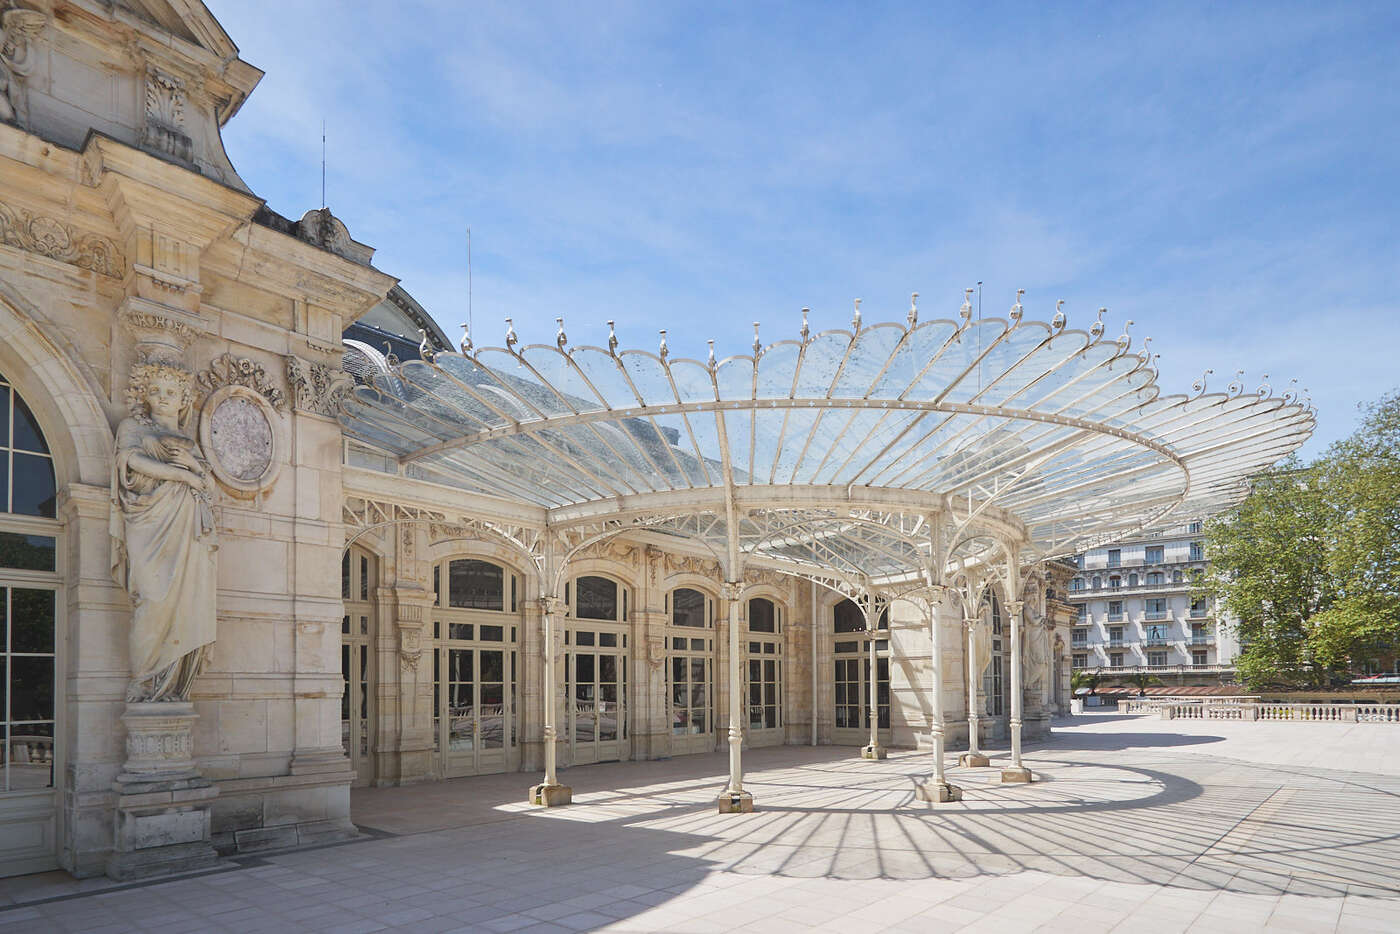 Grand Casino de Vichy